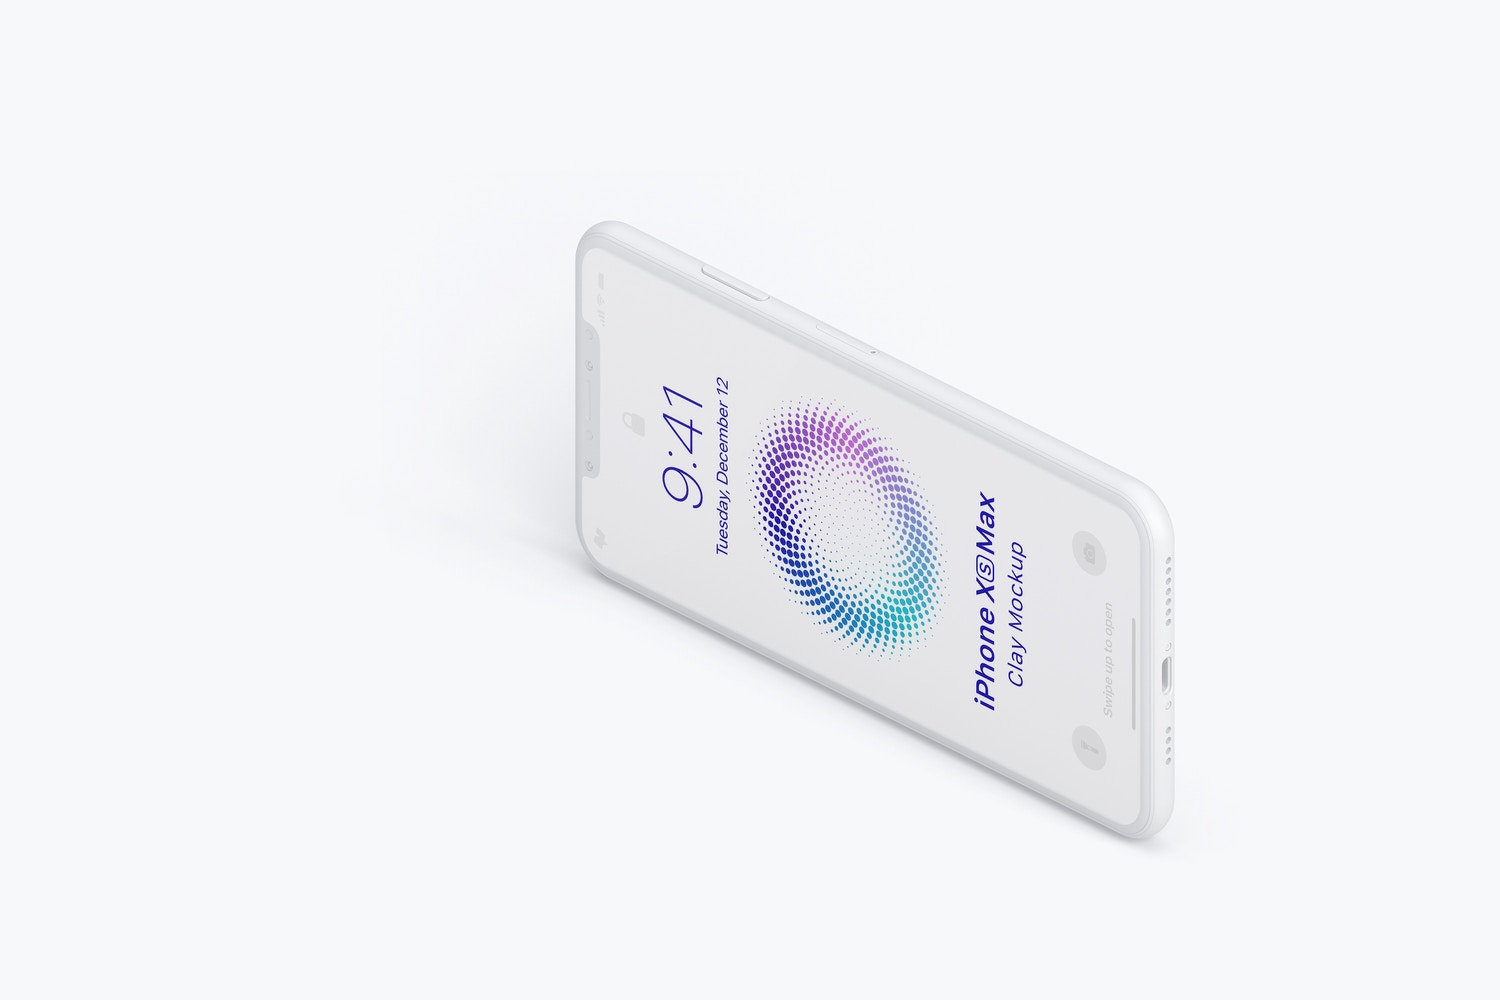 Isometric Clay iPhone XS Max Mockup, Right View 03 (1) by Original Mockups on Original Mockups